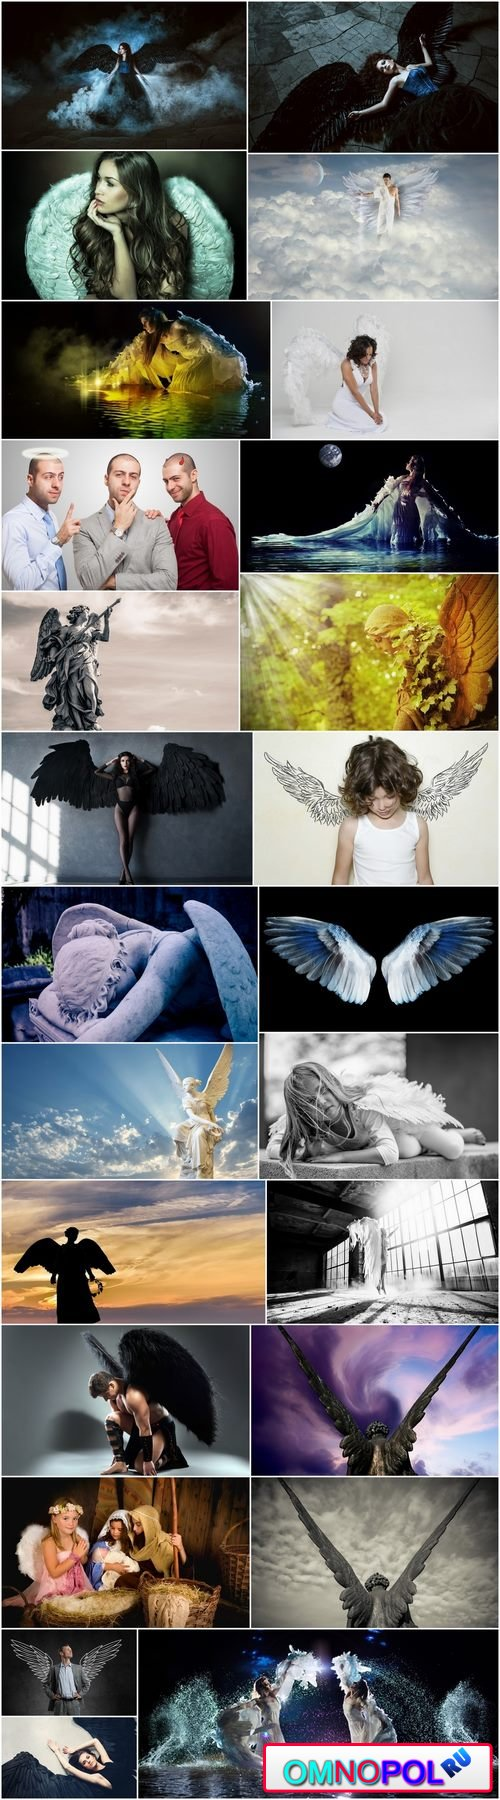 Angel wings wing conceptual illustration girl woman sculpture statue 25 HQ Jpeg